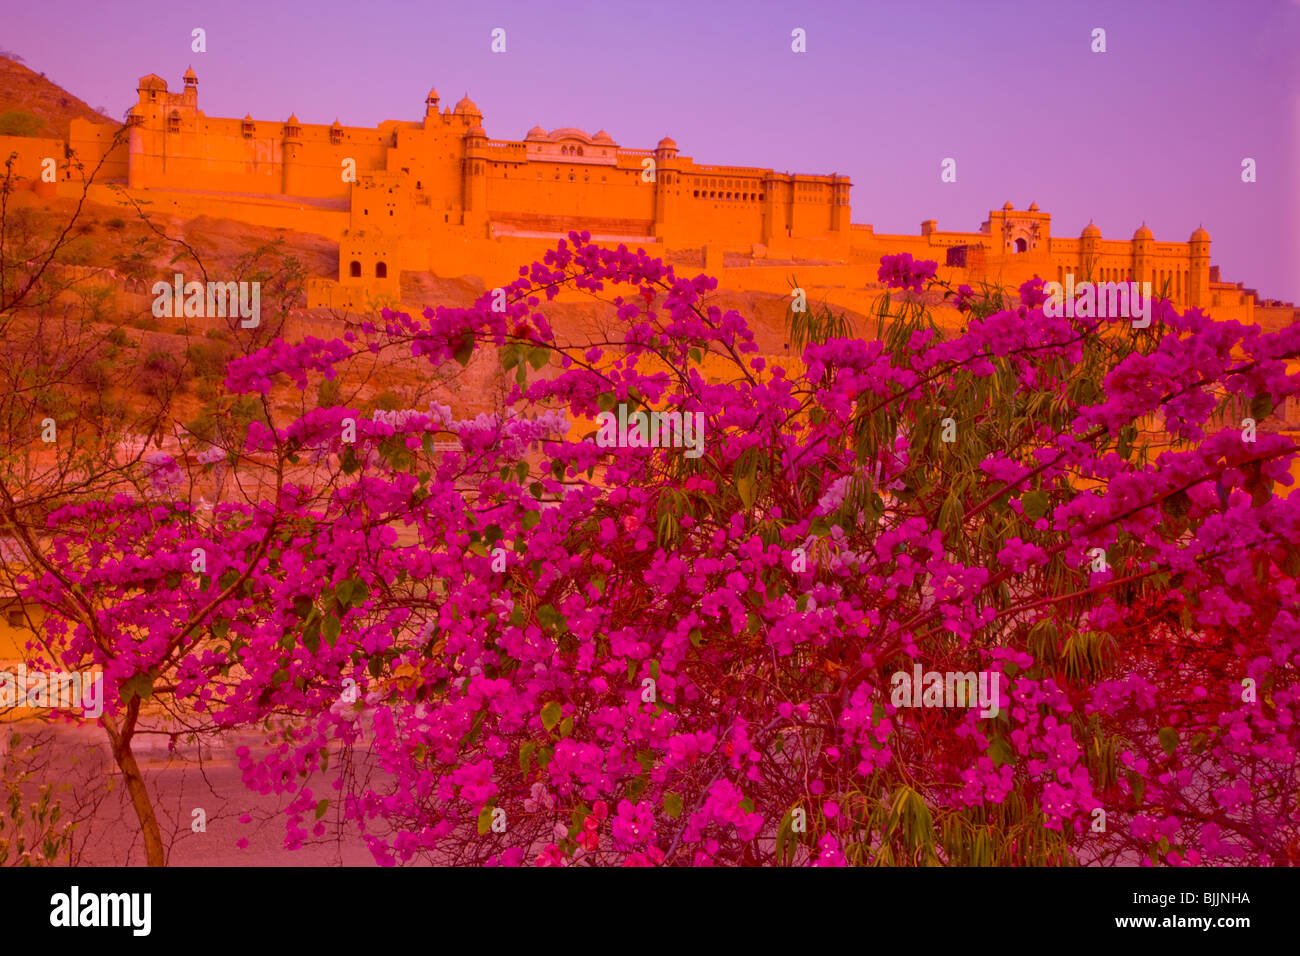 Forte Amber, Rajasthan, India, istituito nel 1592, vicino a Jaipur Immagini Stock